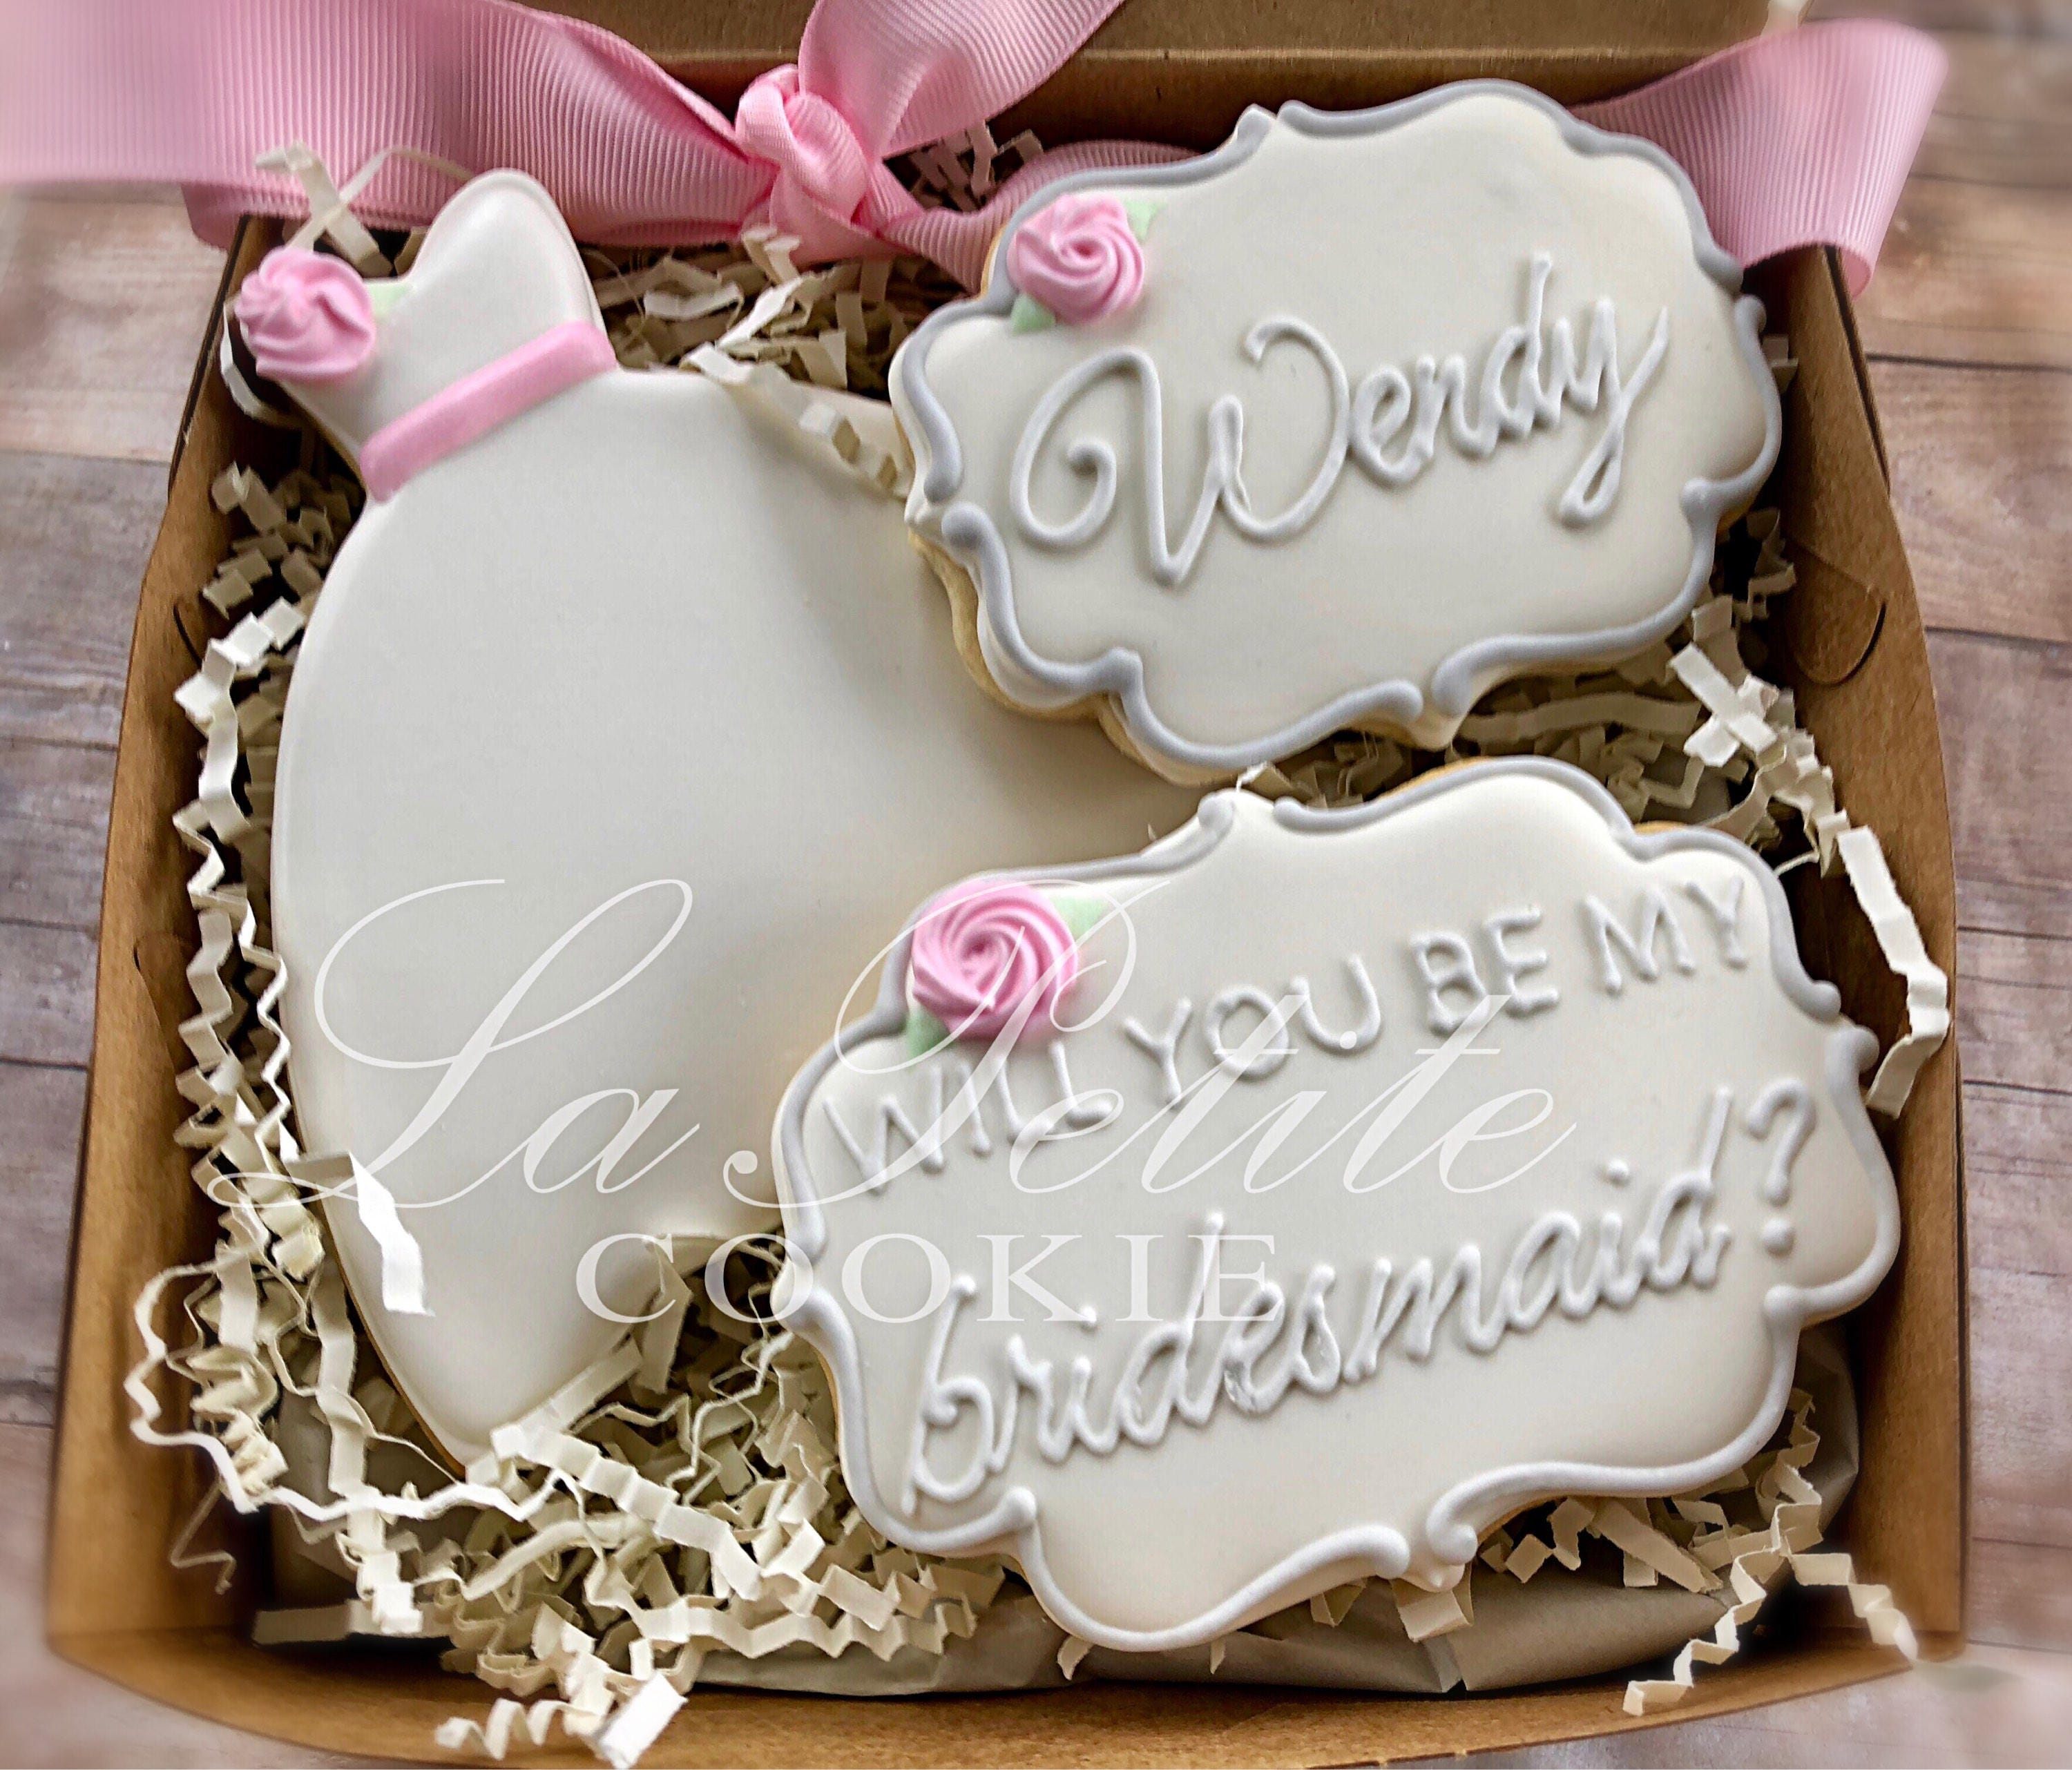 Bridesmaid Maid of Honor or Flower Girl cookie gift set